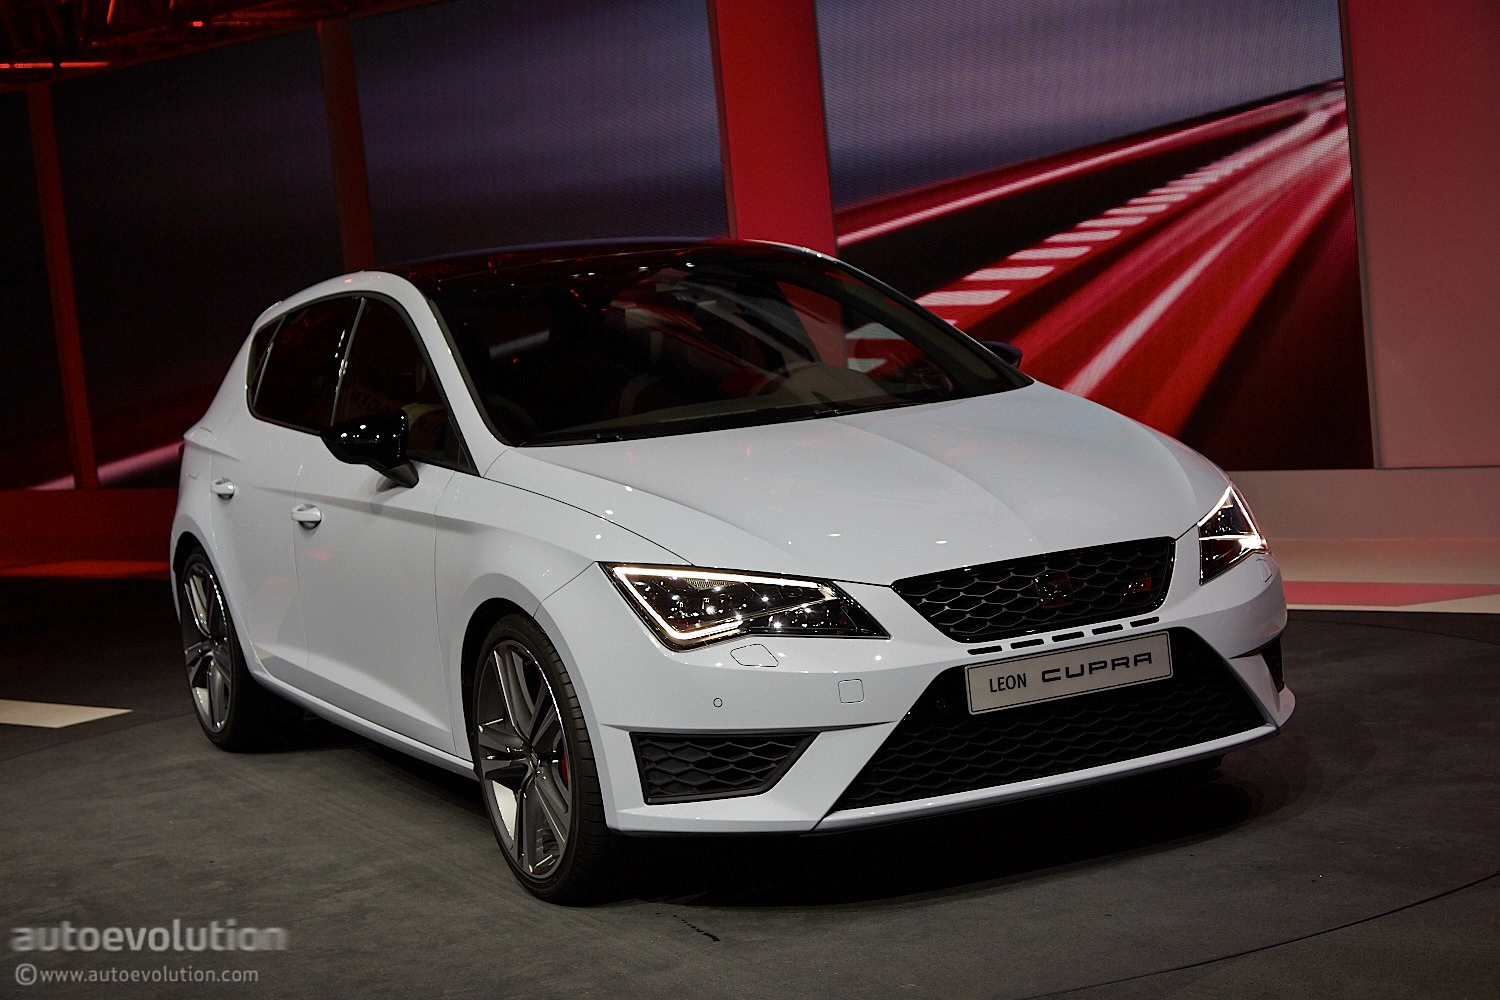 2014 SEAT Leon Cupra Is the Hottest of the Hot Hatches ...